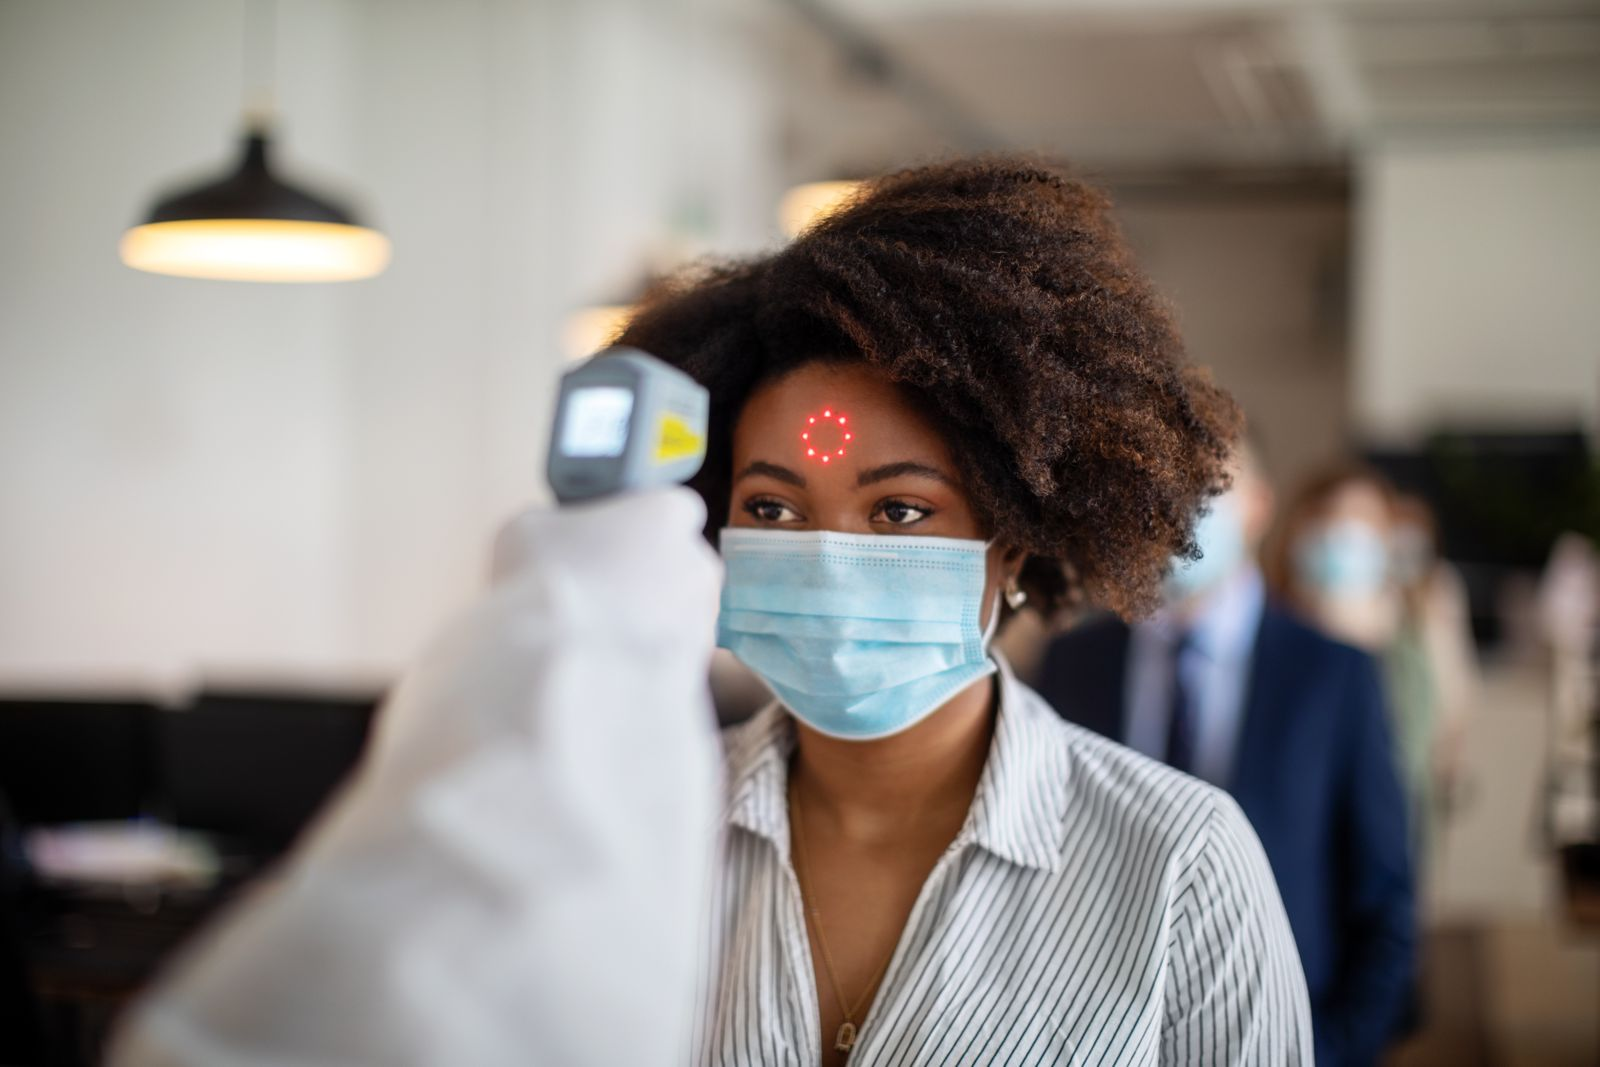 Woman going through a temperature check before going to work in office